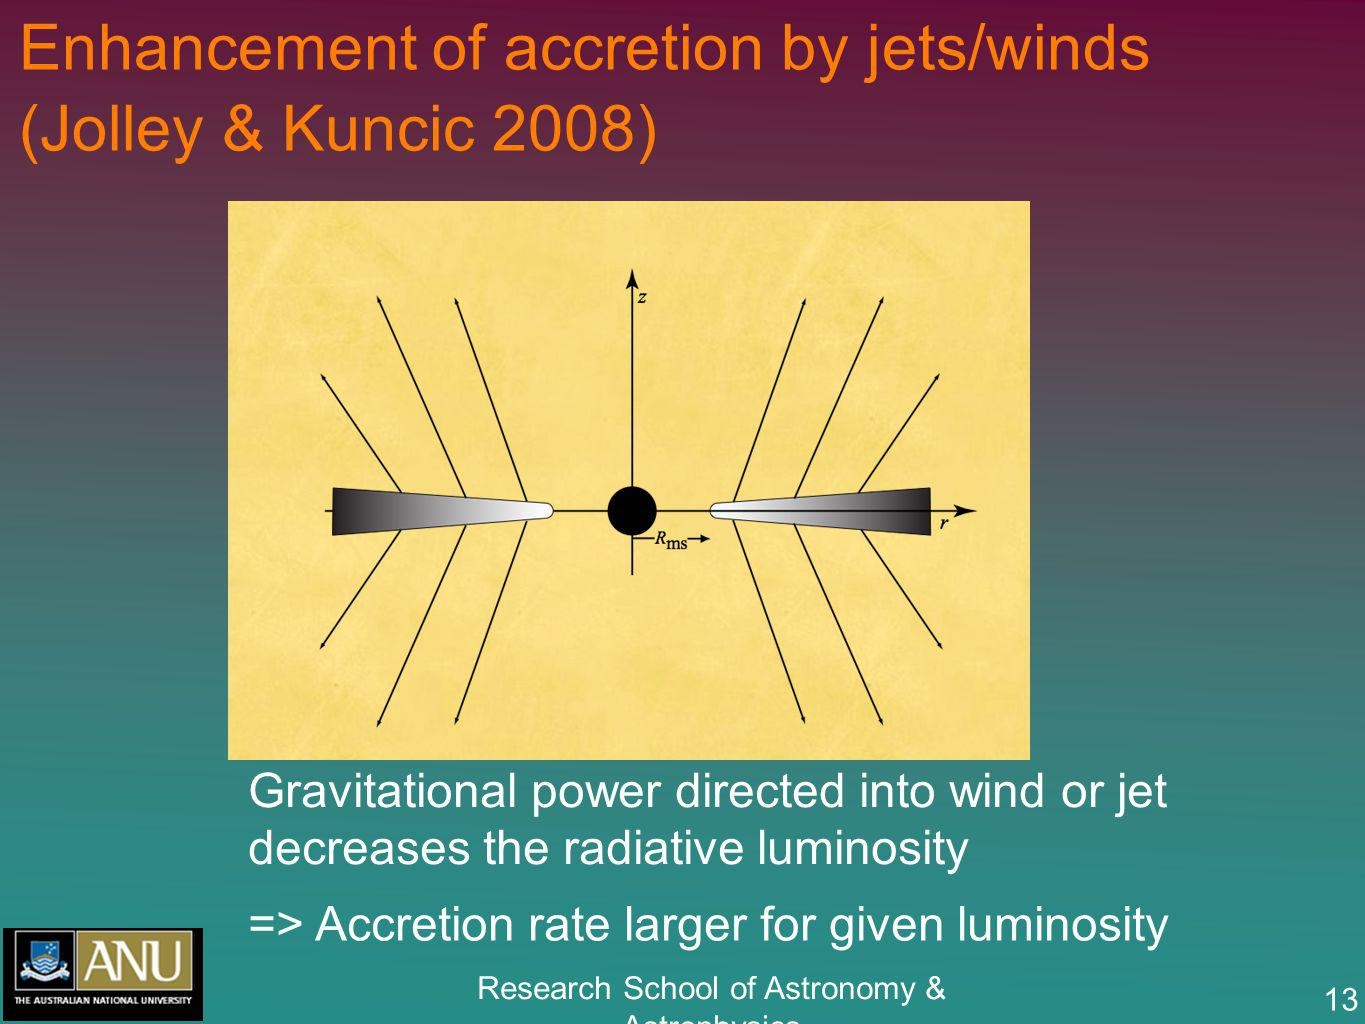 Research School of Astronomy & Astrophysics 13 Enhancement of accretion by jets/winds (Jolley & Kuncic 2008) Gravitational power directed into wind or